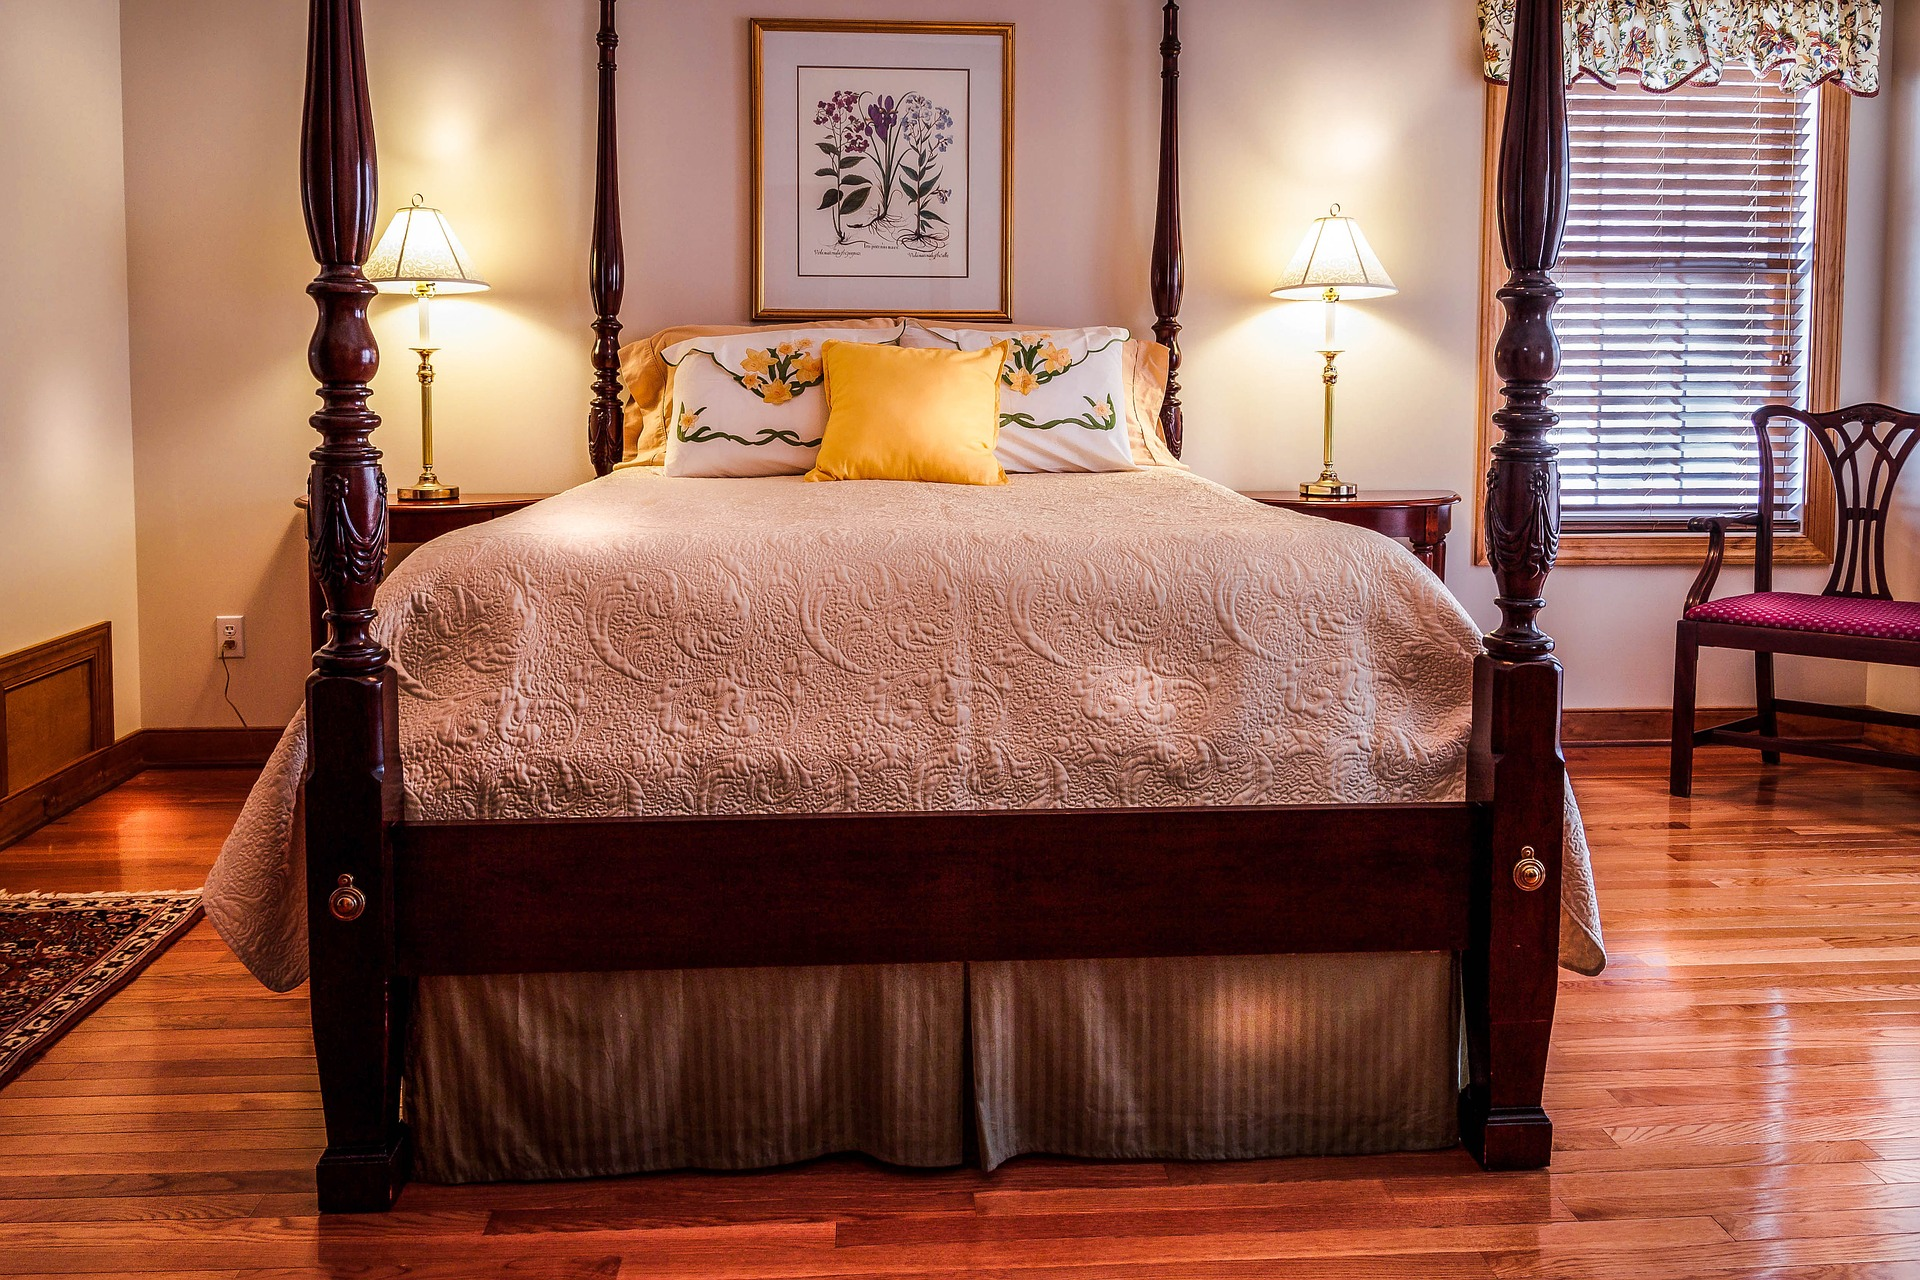 Large Bed Wood Floor PDHF